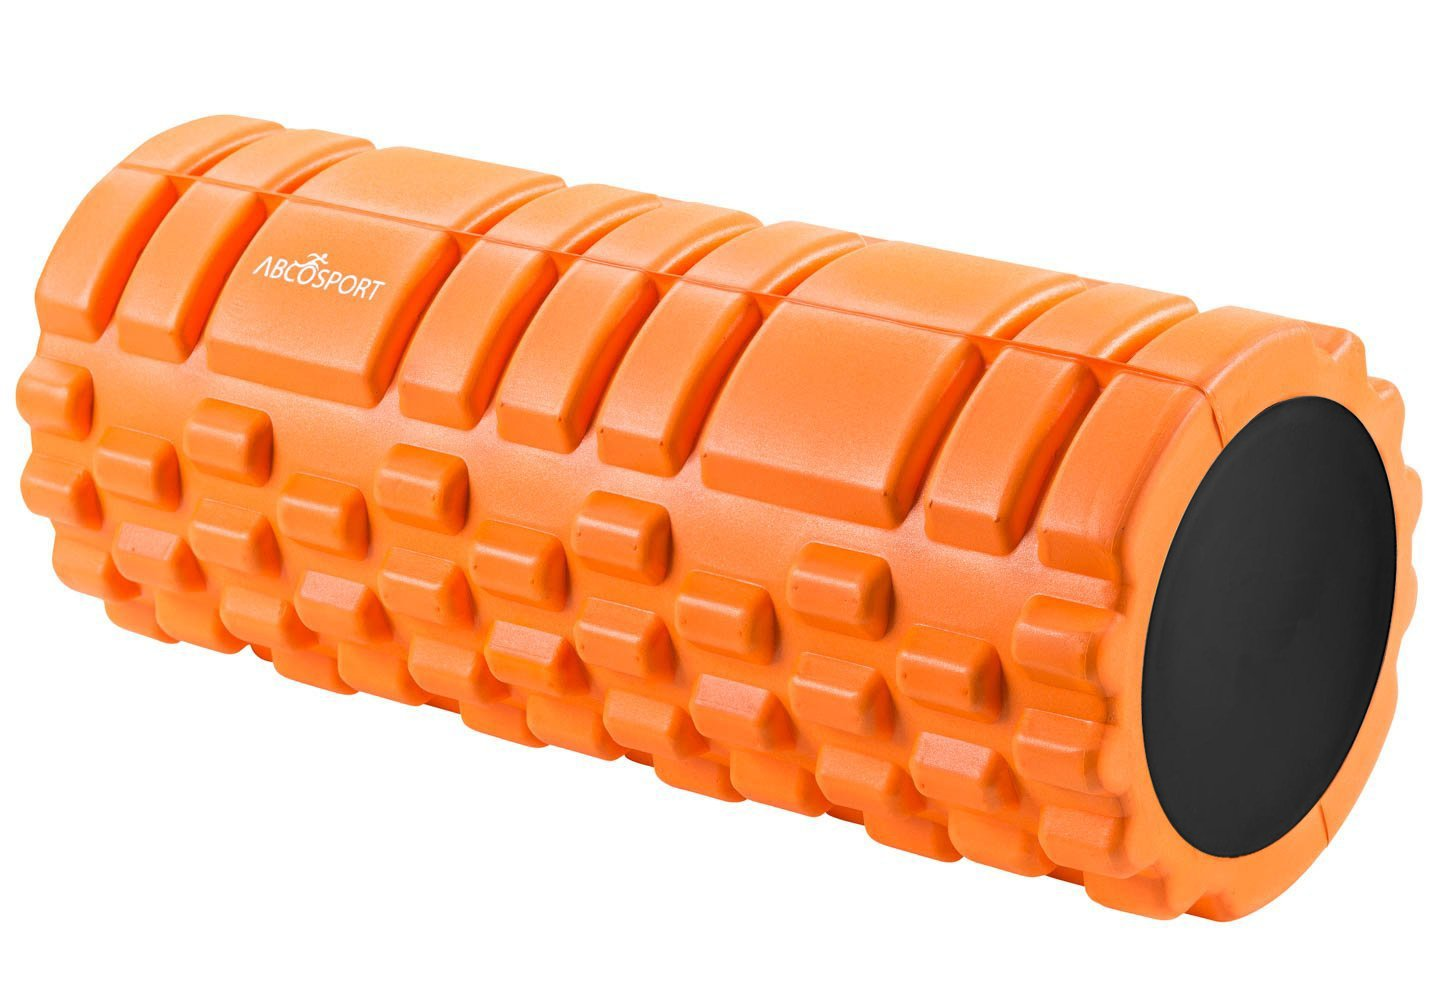 Foam Roller for Physical Therapy, Myofascial Release & Exercise for Muscles with Soft Deep-Tissue Massage - Best for Stretching, Tension Release, Cramp Relief, Pilates & Yoga - 13'' x 5'', ORANGE